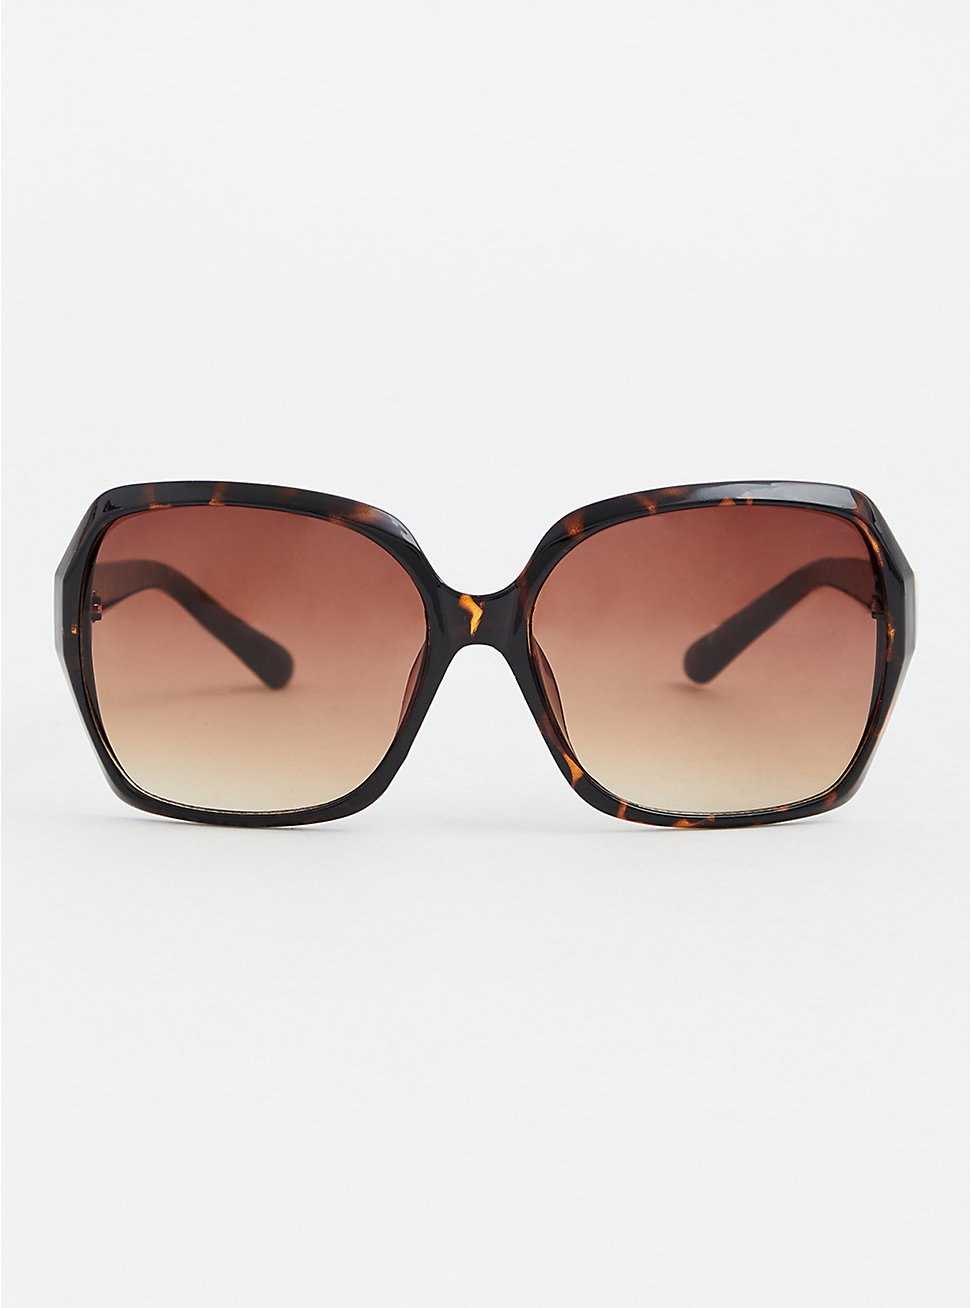 Tortoiseshell Square Sunglasses, , hi-res